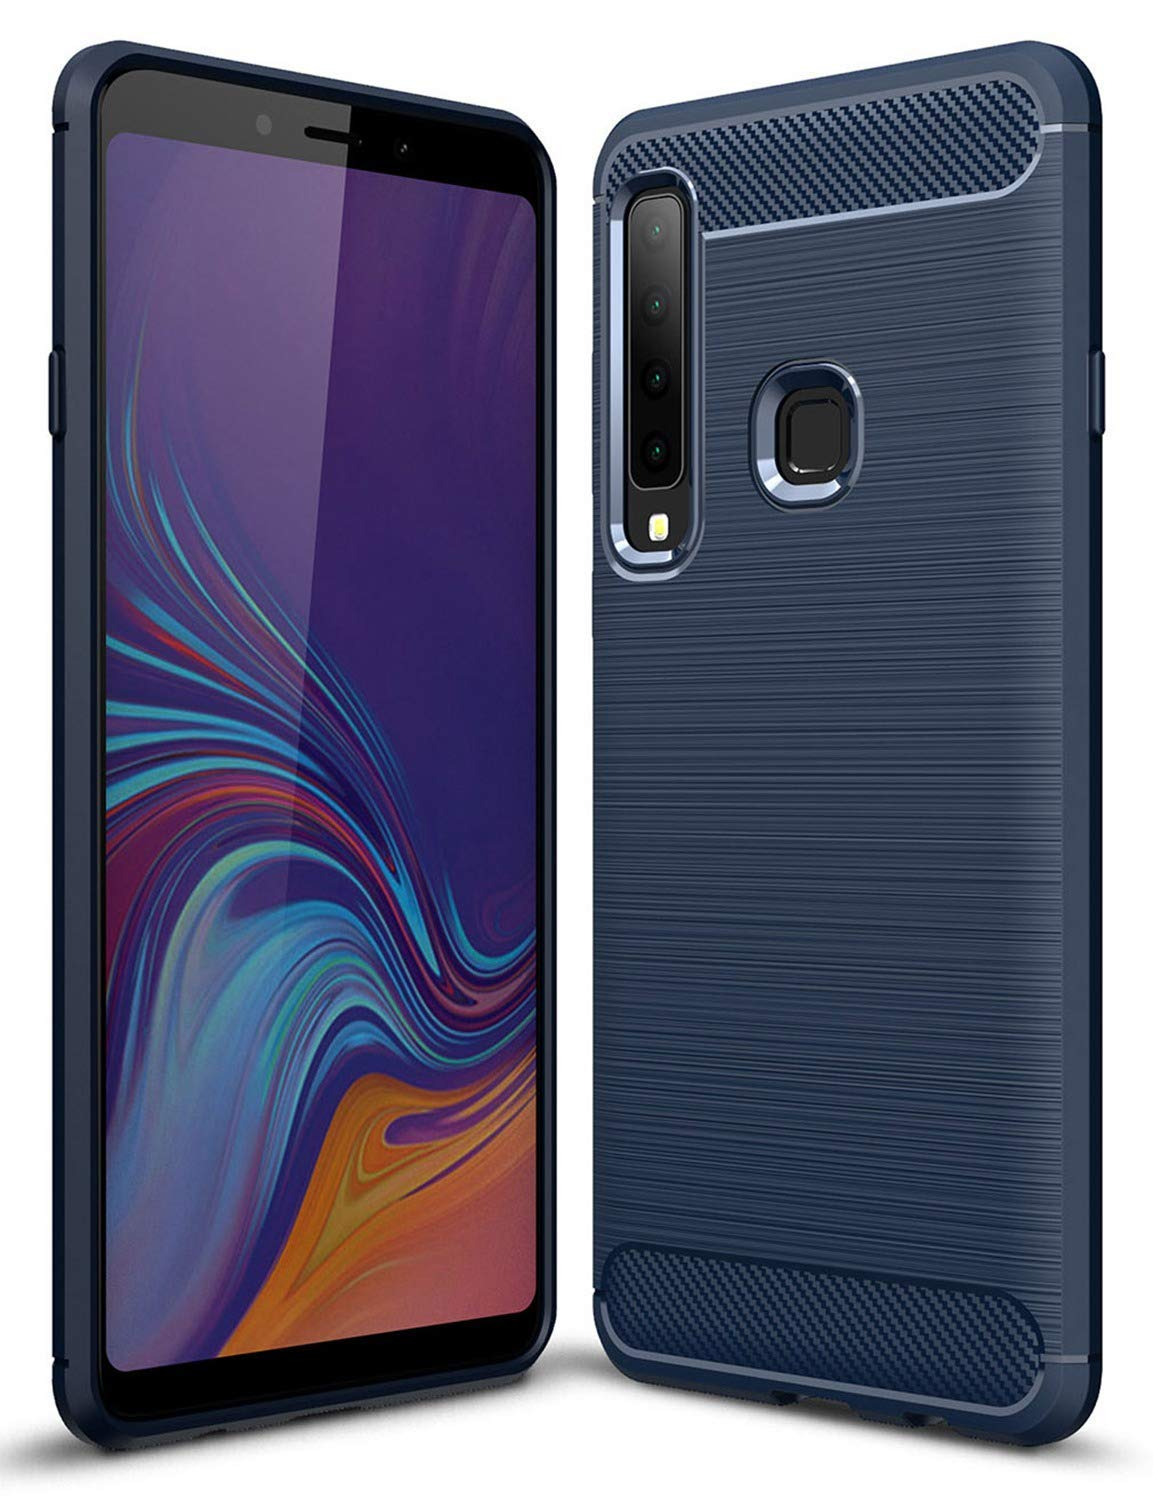 Toppix Case for Samsung Galaxy A9 (2018), Soft TPU Bumper Flexible [Shock Absorption] [Carbon Fiber Texture] Bumper Protective Cover for Galaxy A9 (2018), Blue